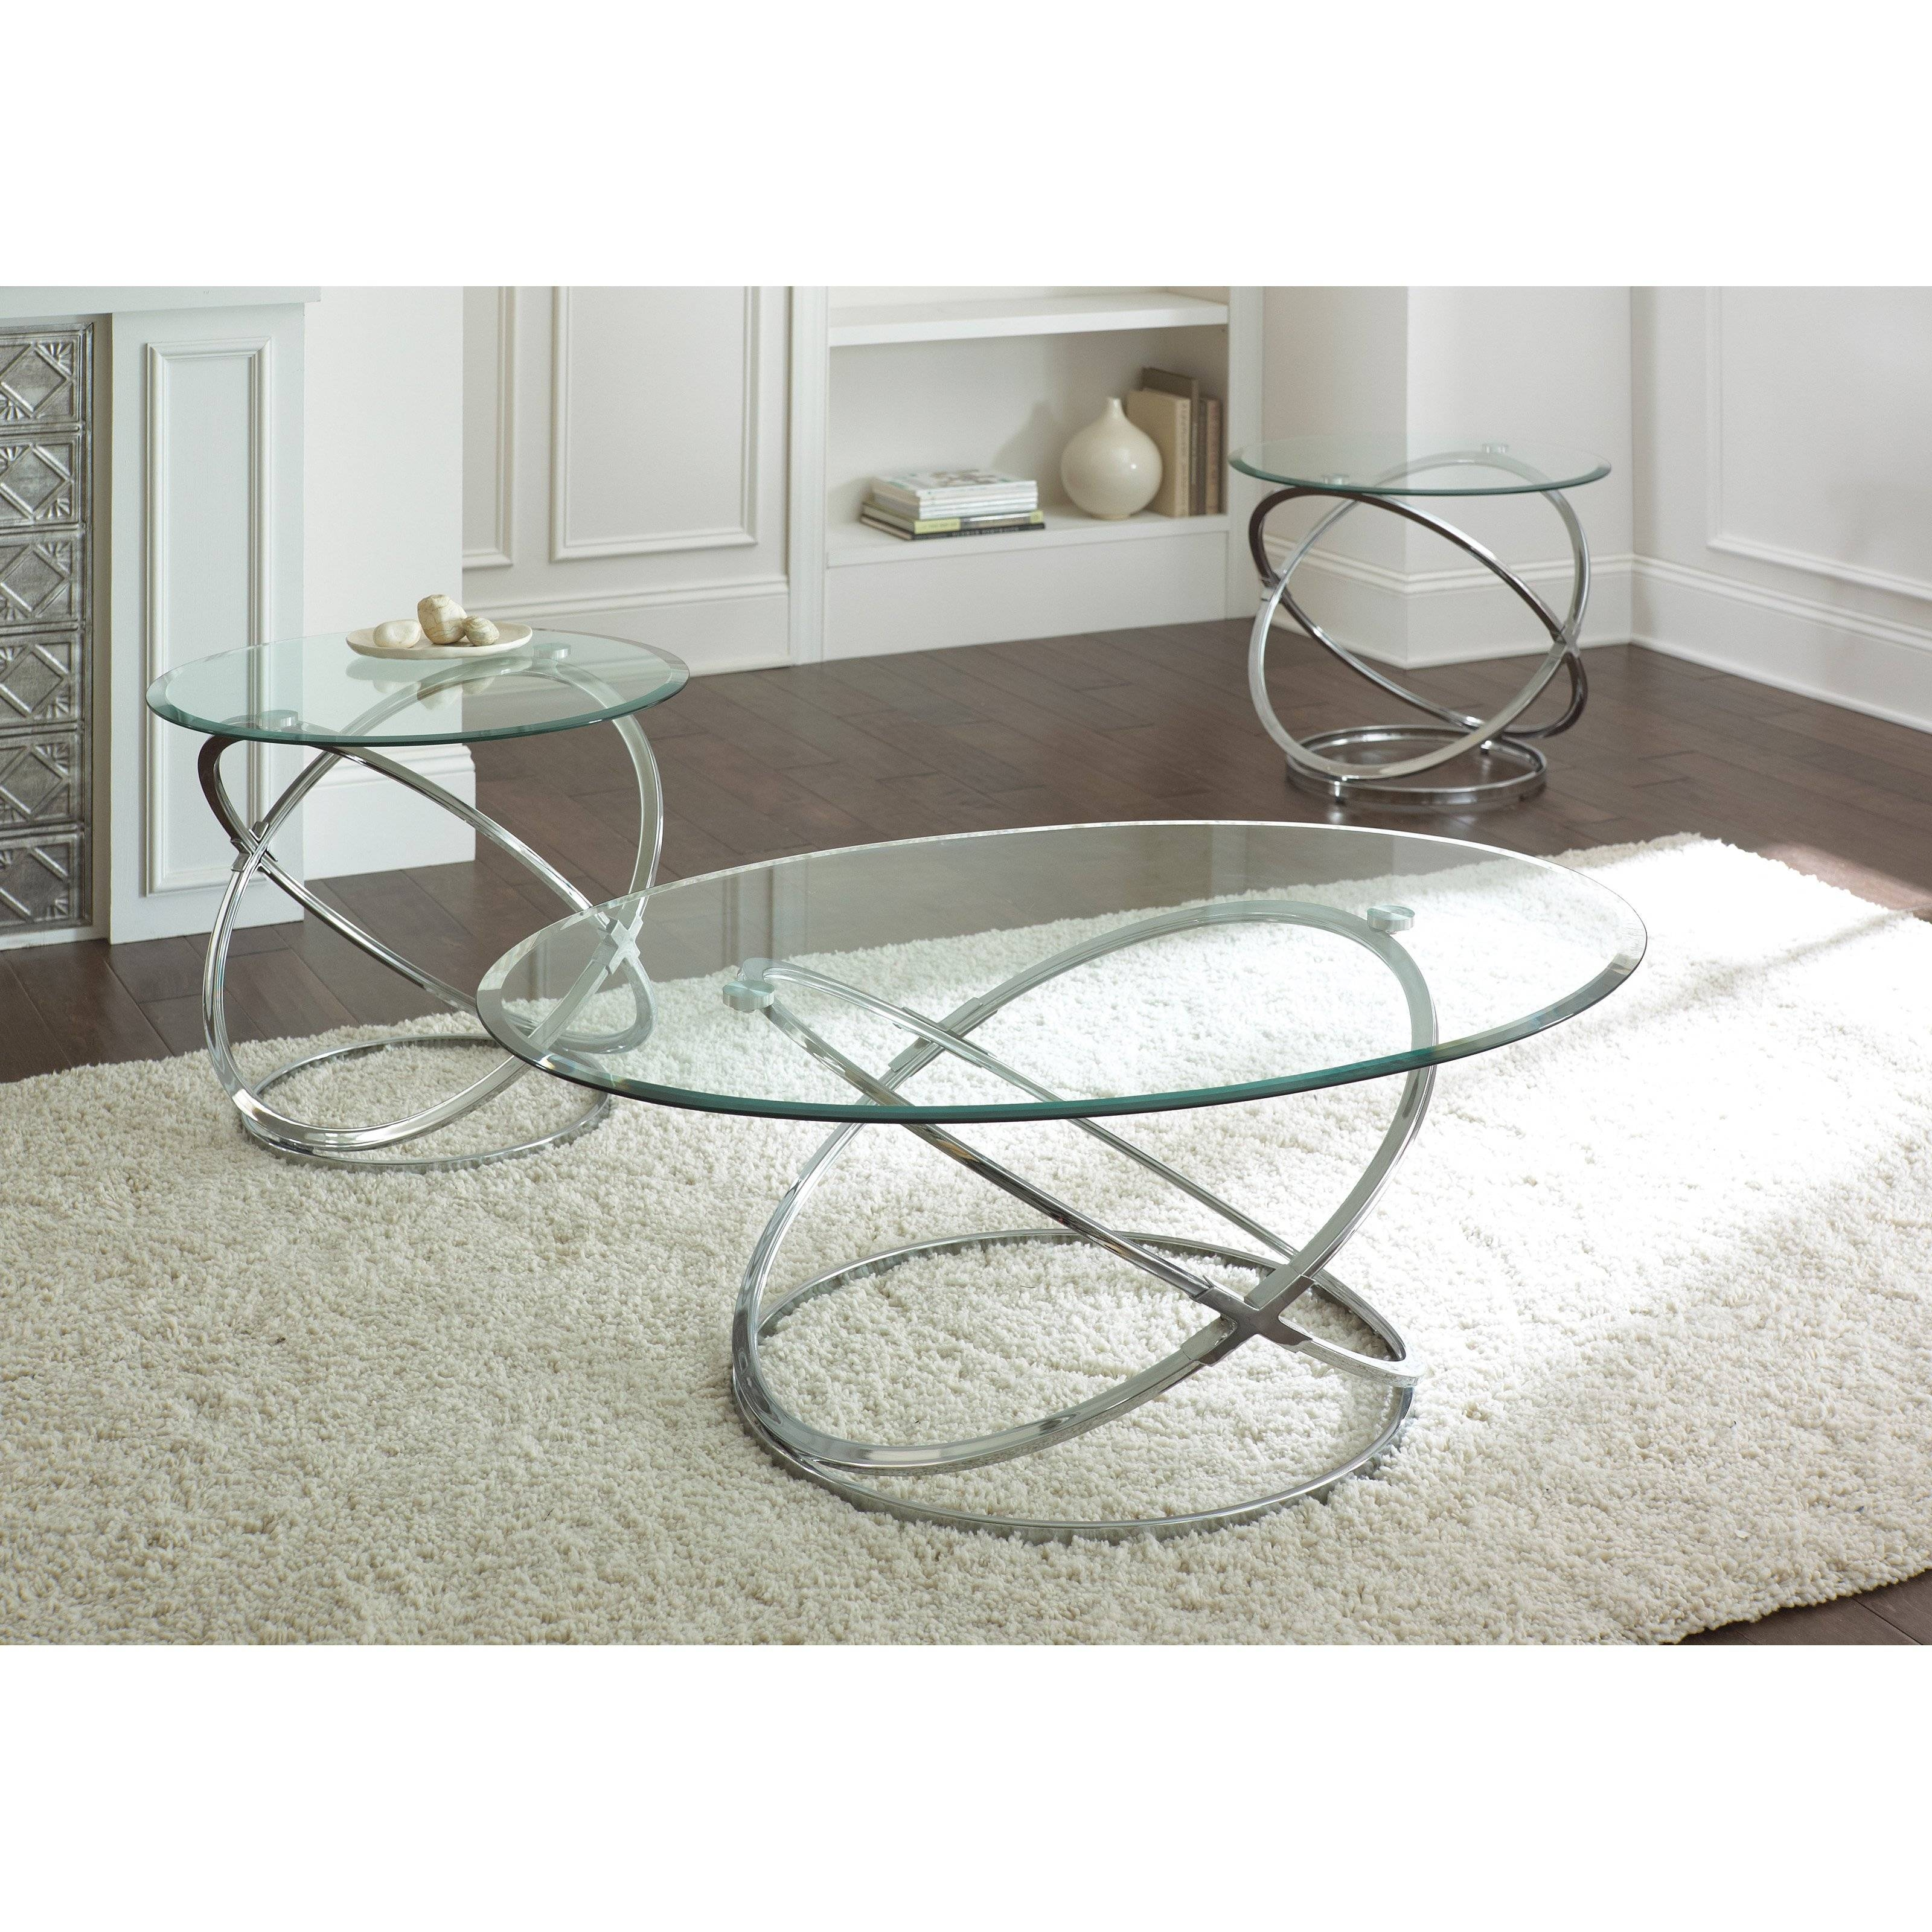 Steve Silver Orion Oval Chrome And Glass Coffee Table Set Pertaining To Chrome Glass Coffee Tables (View 28 of 30)